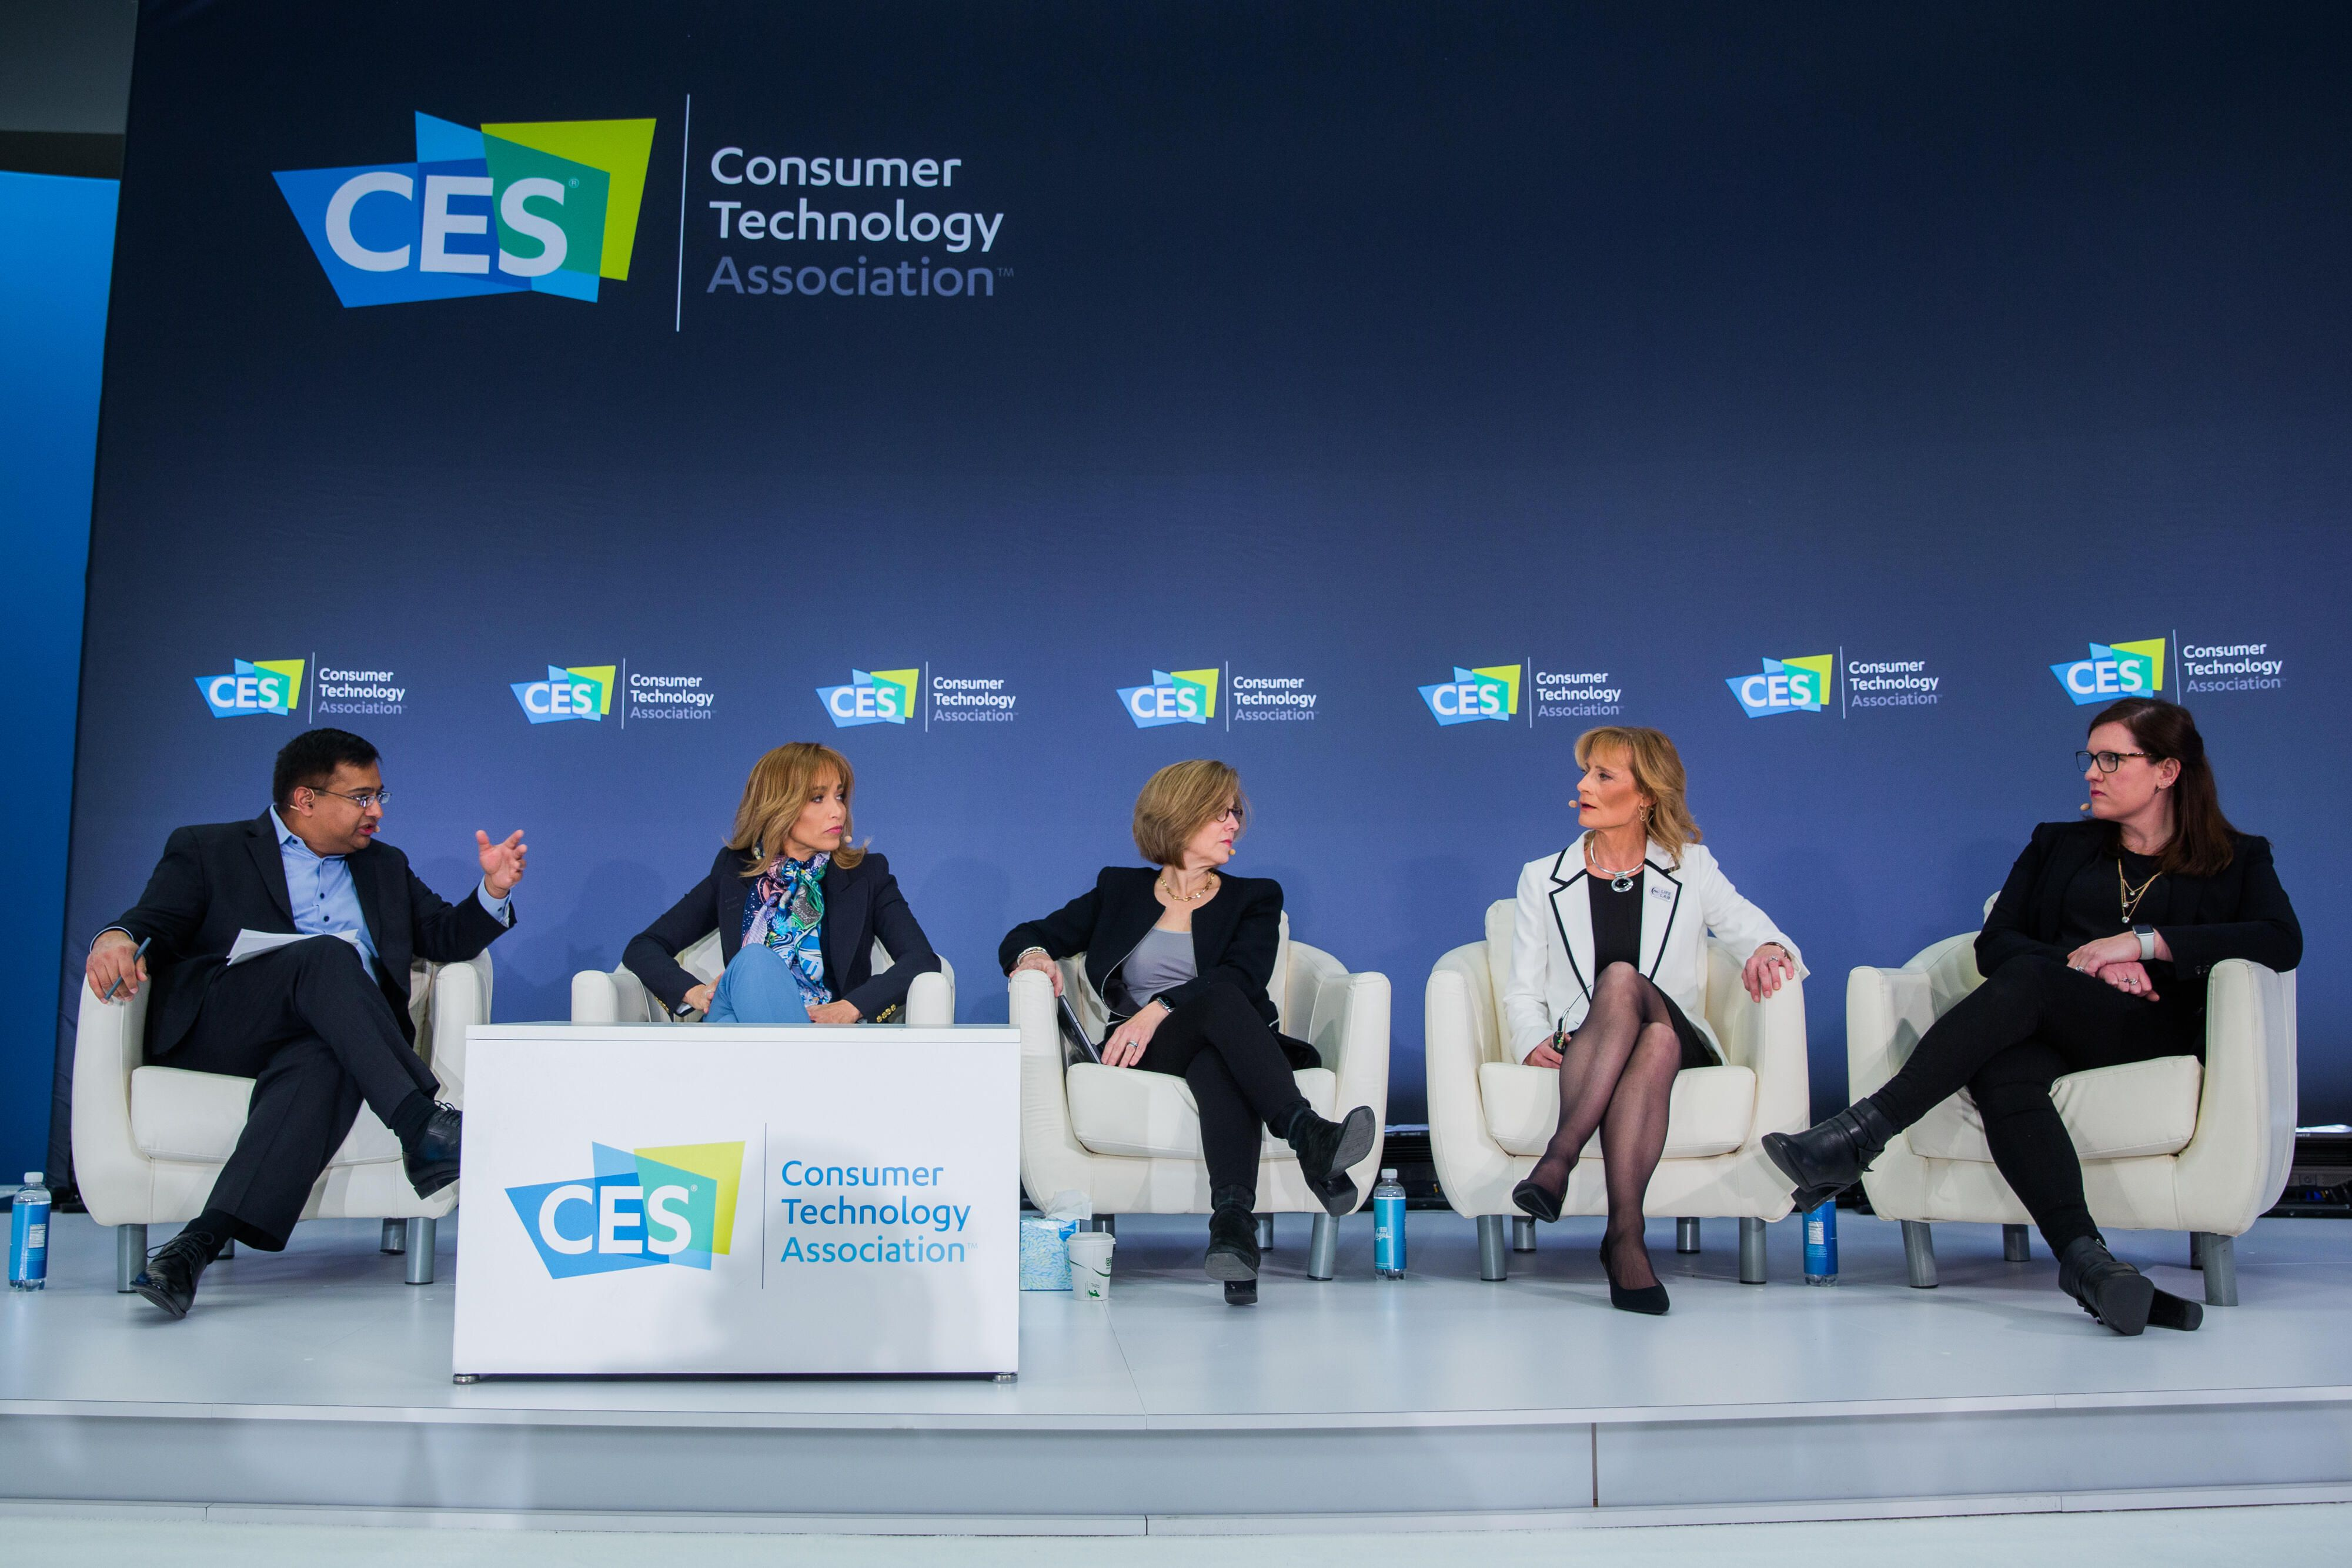 ces-2020-privacy-panel-5954